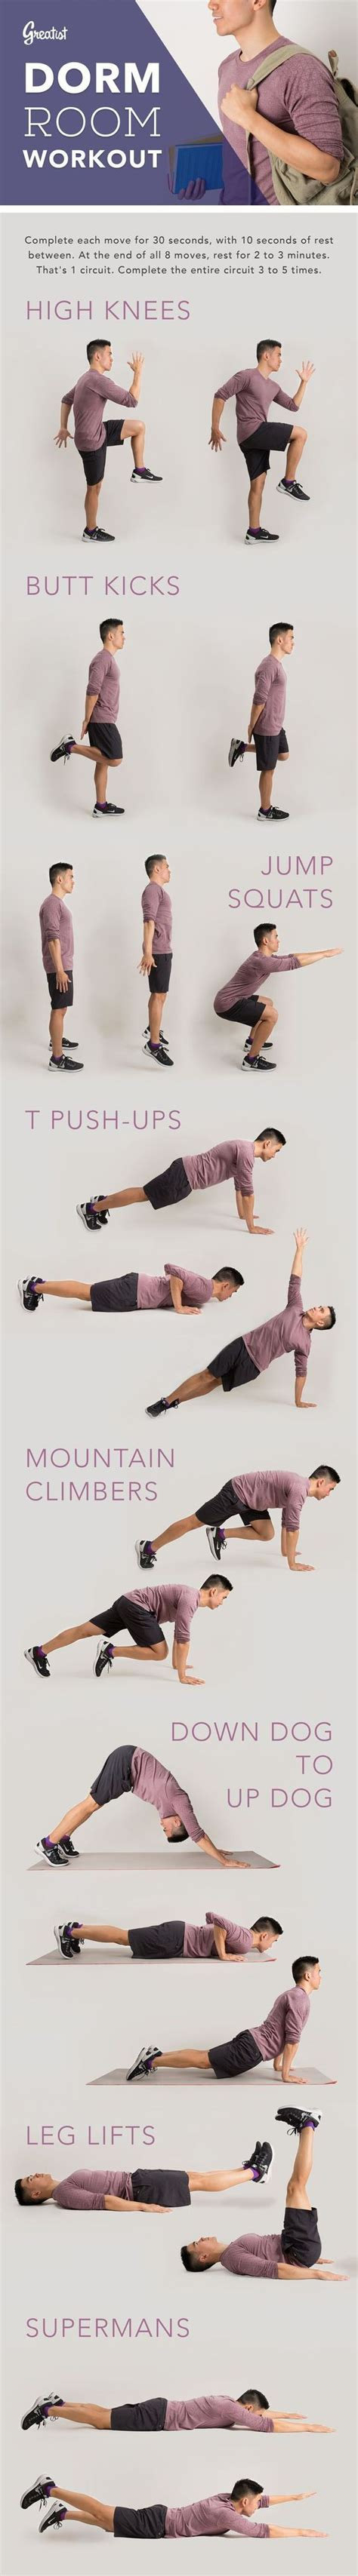 workouts to do in your room 8 bodyweight exercises to do in your room exercise palms and hotels